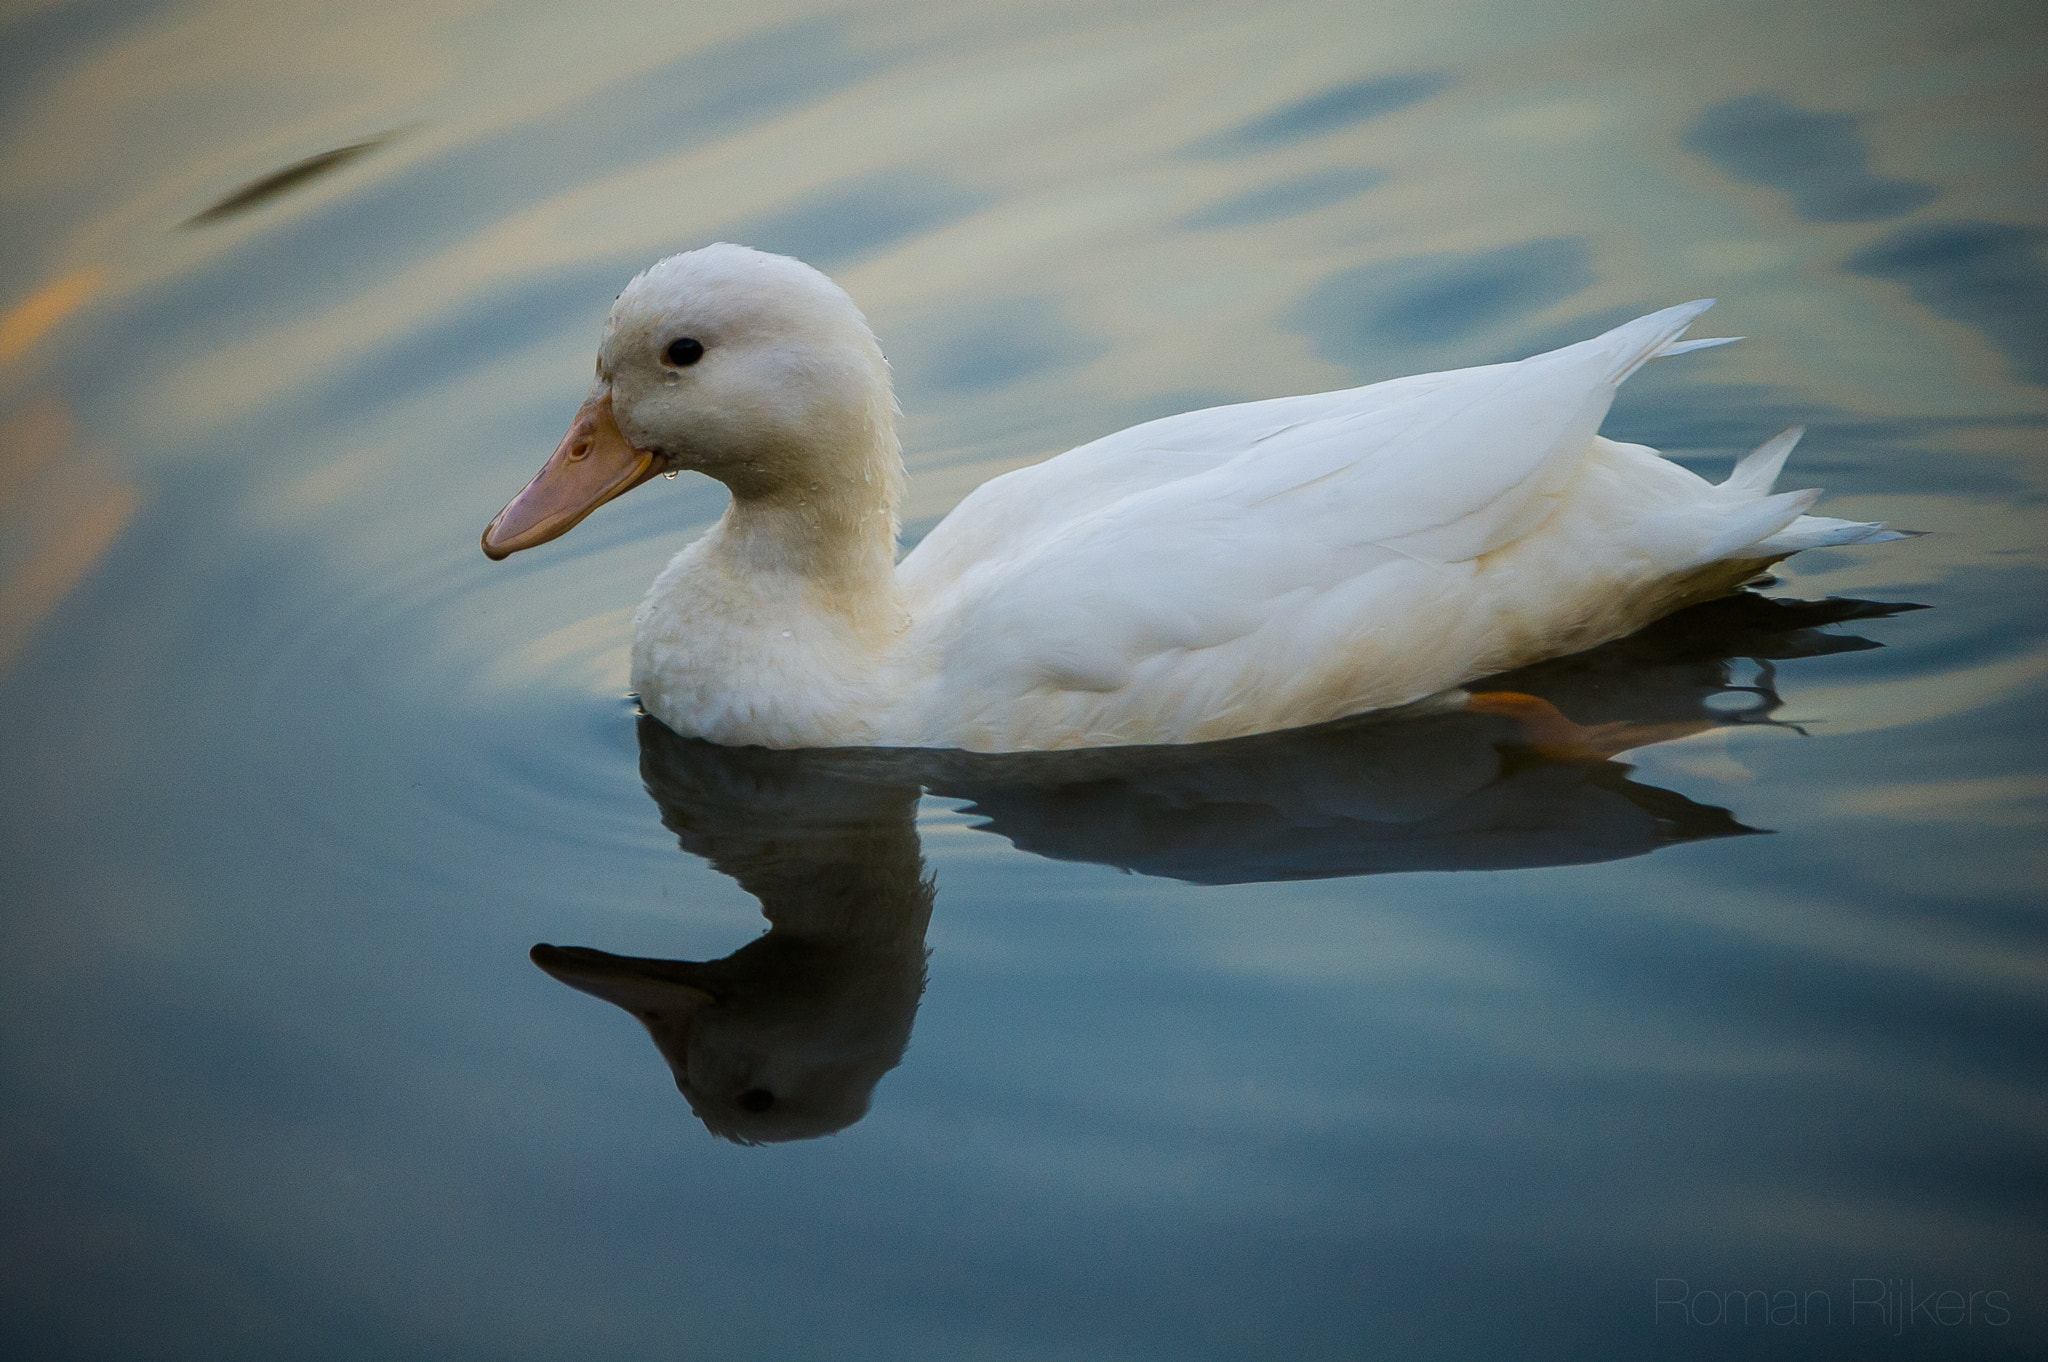 Photograph White duck by Roman Rijkers on 500px